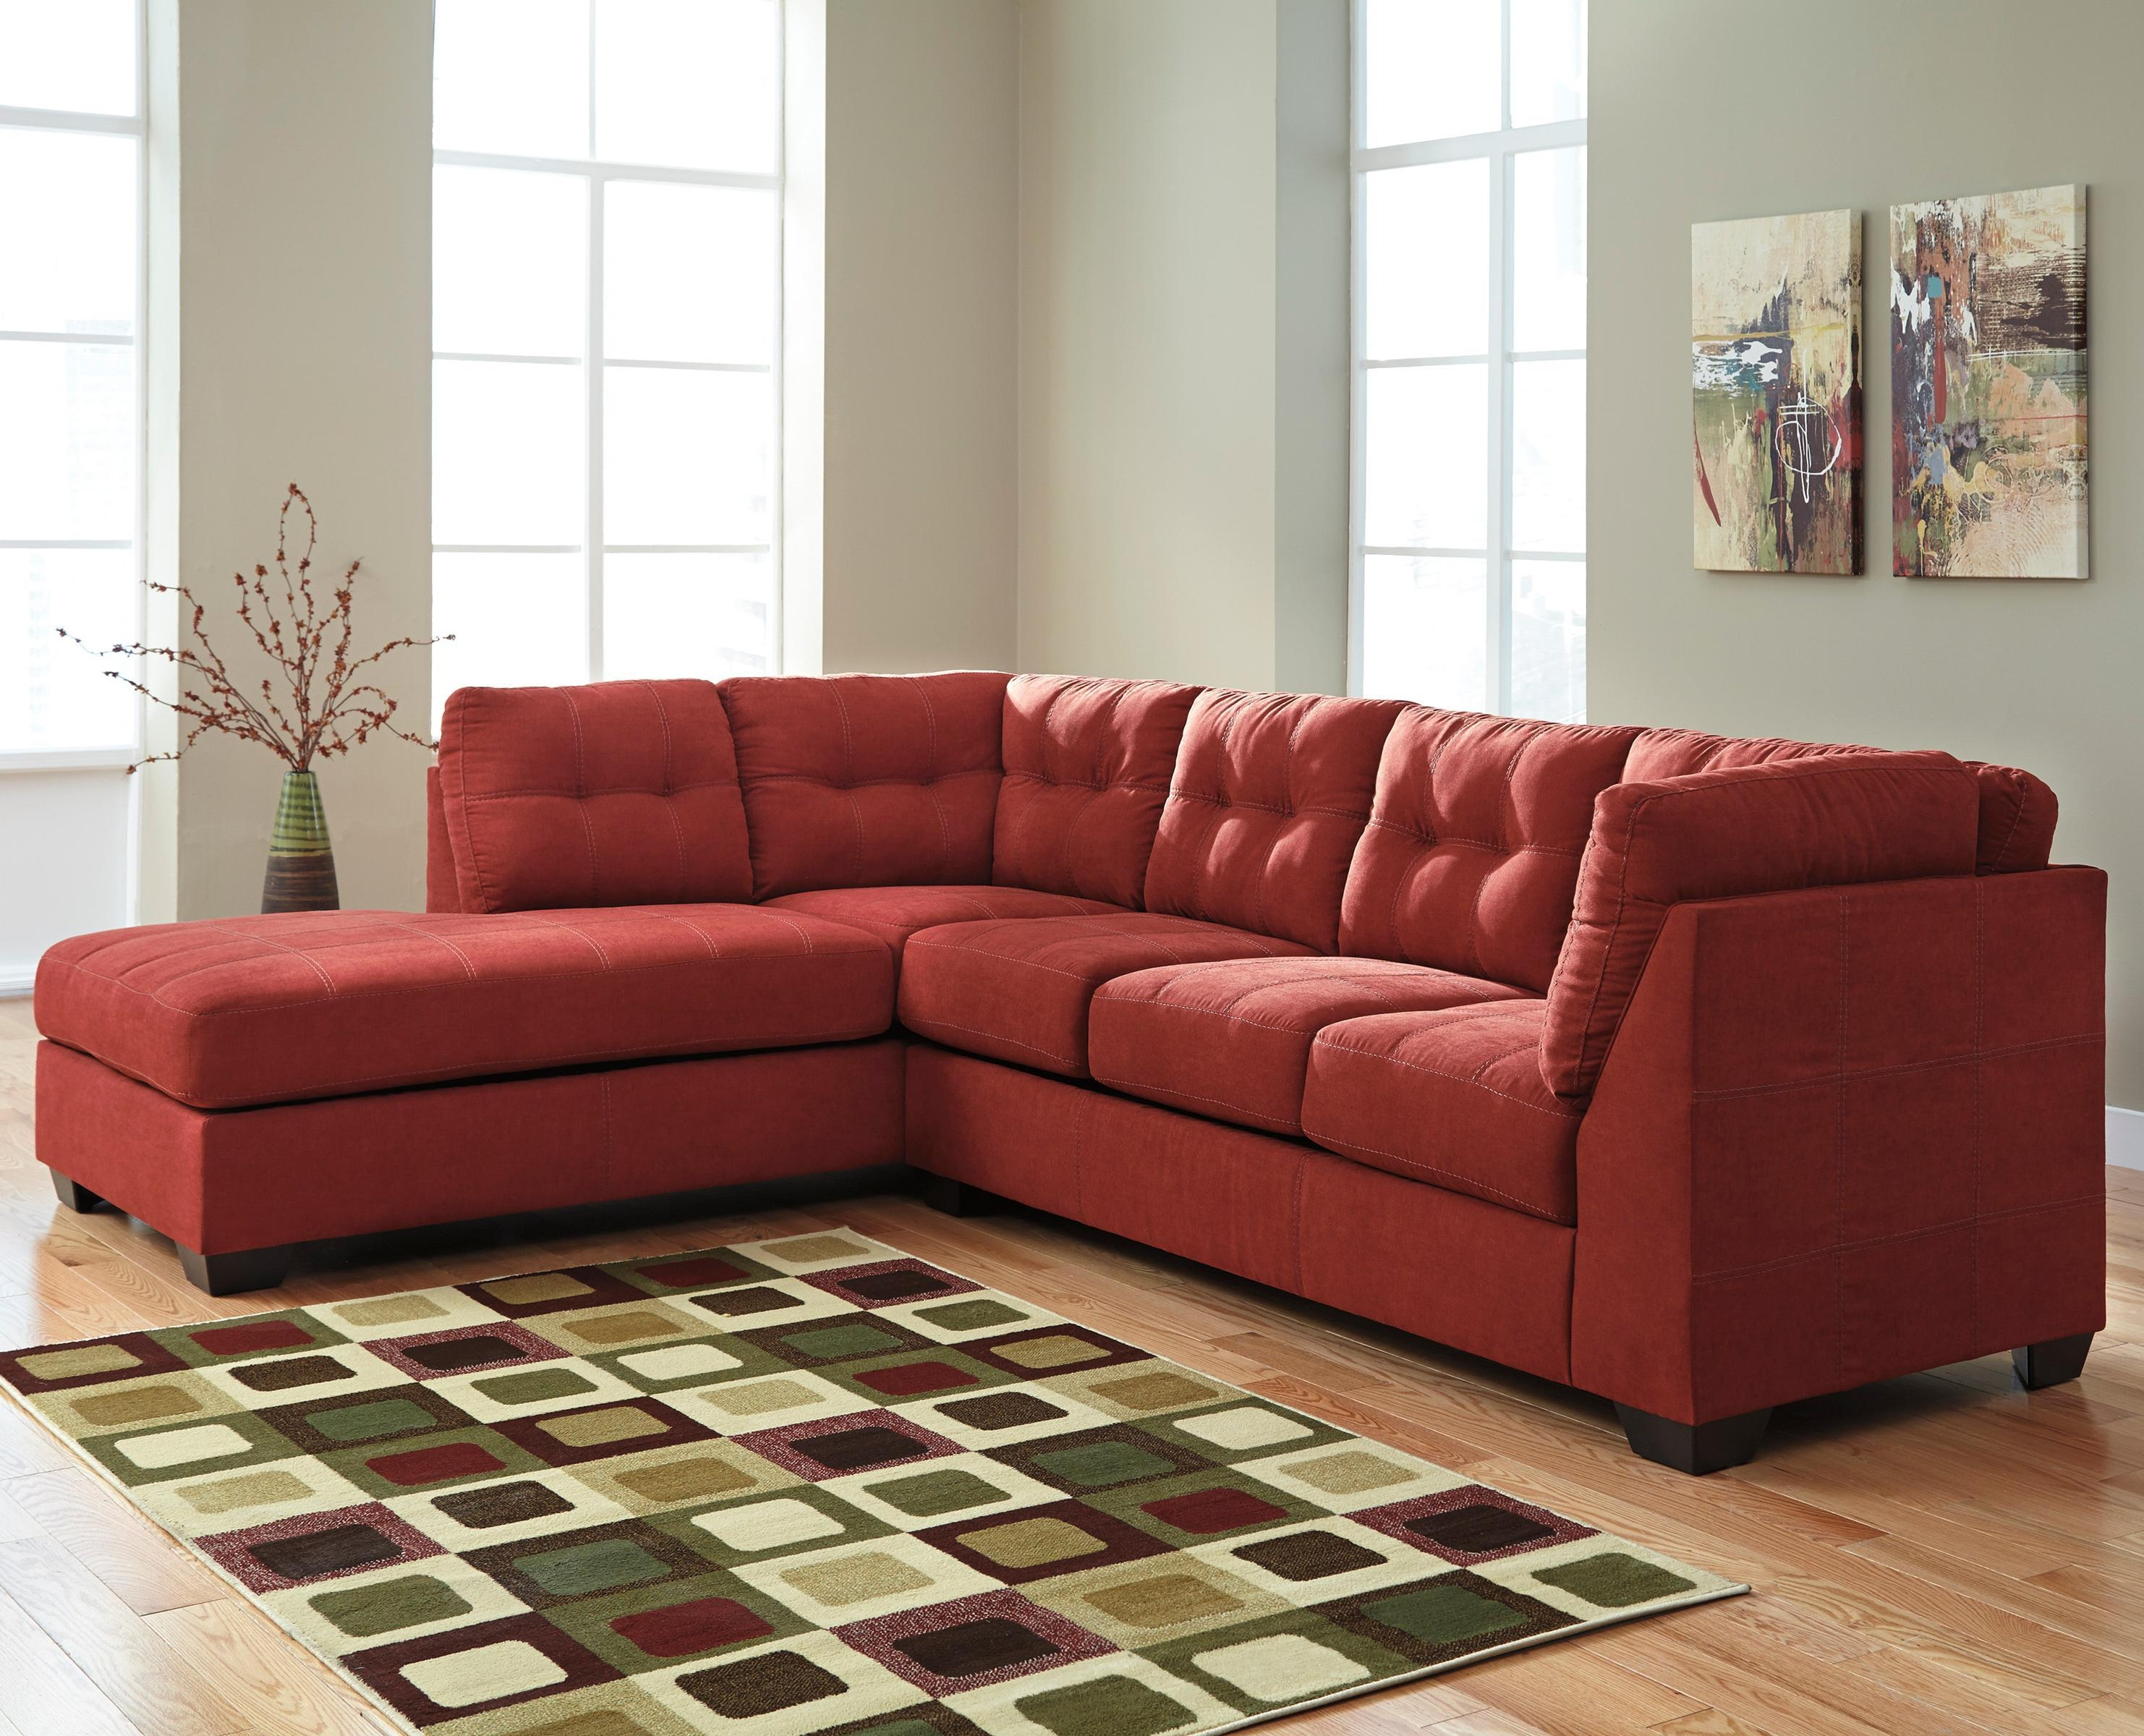 Sofas : Fabulous Red Sectional Sectional Sofas Wrap Around Couch 2 In Small 2 Piece Sectional Sofas (Image 15 of 23)